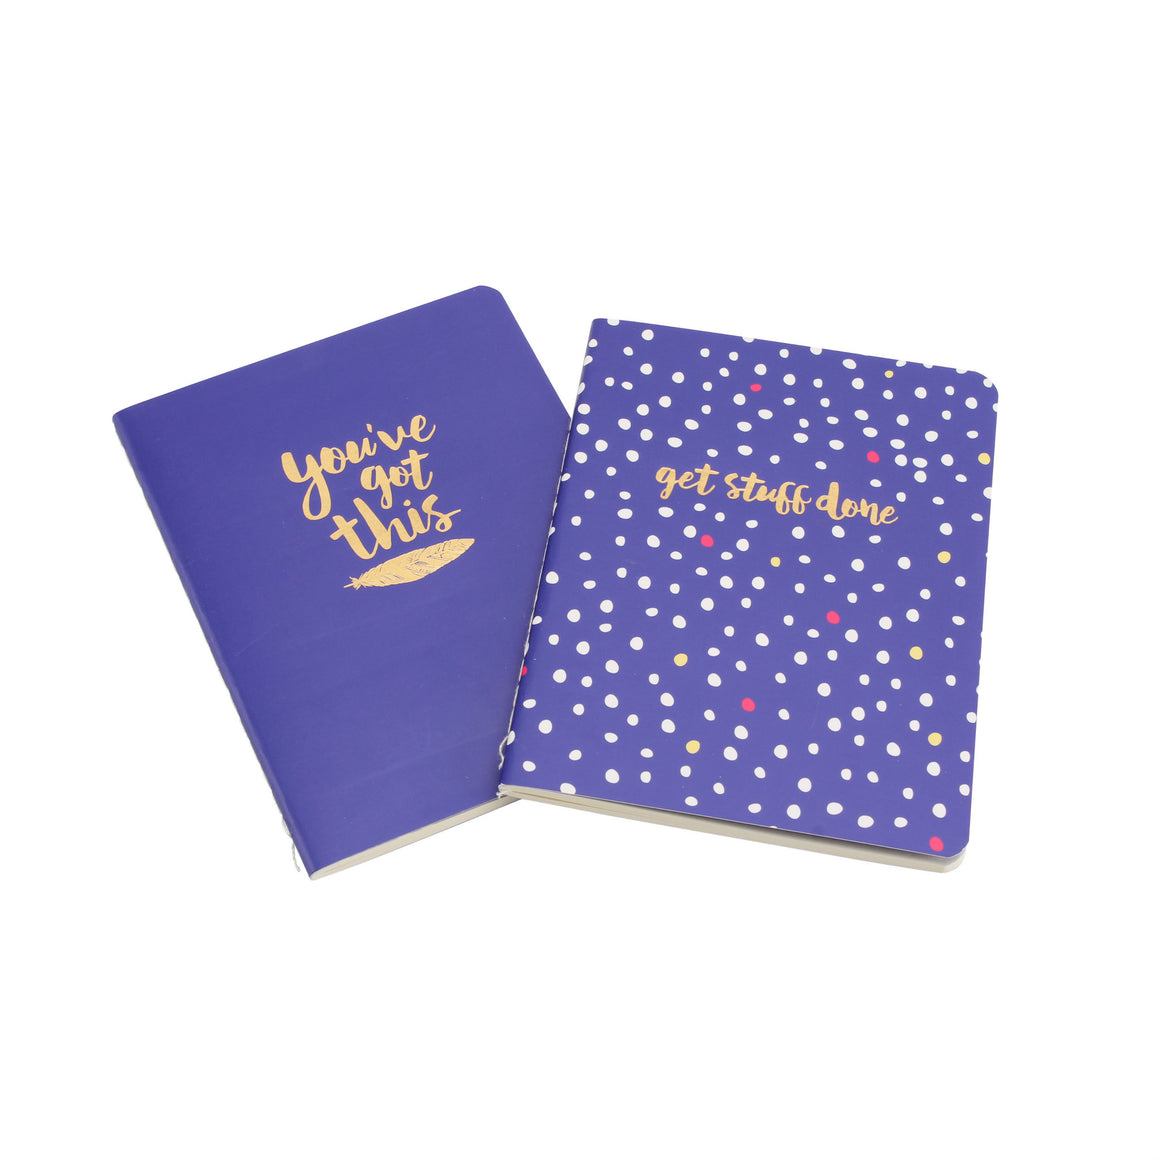 'You've Got This & Get Stuff Done' A6 Lined Notebooks Set of 2 - The Love Trees